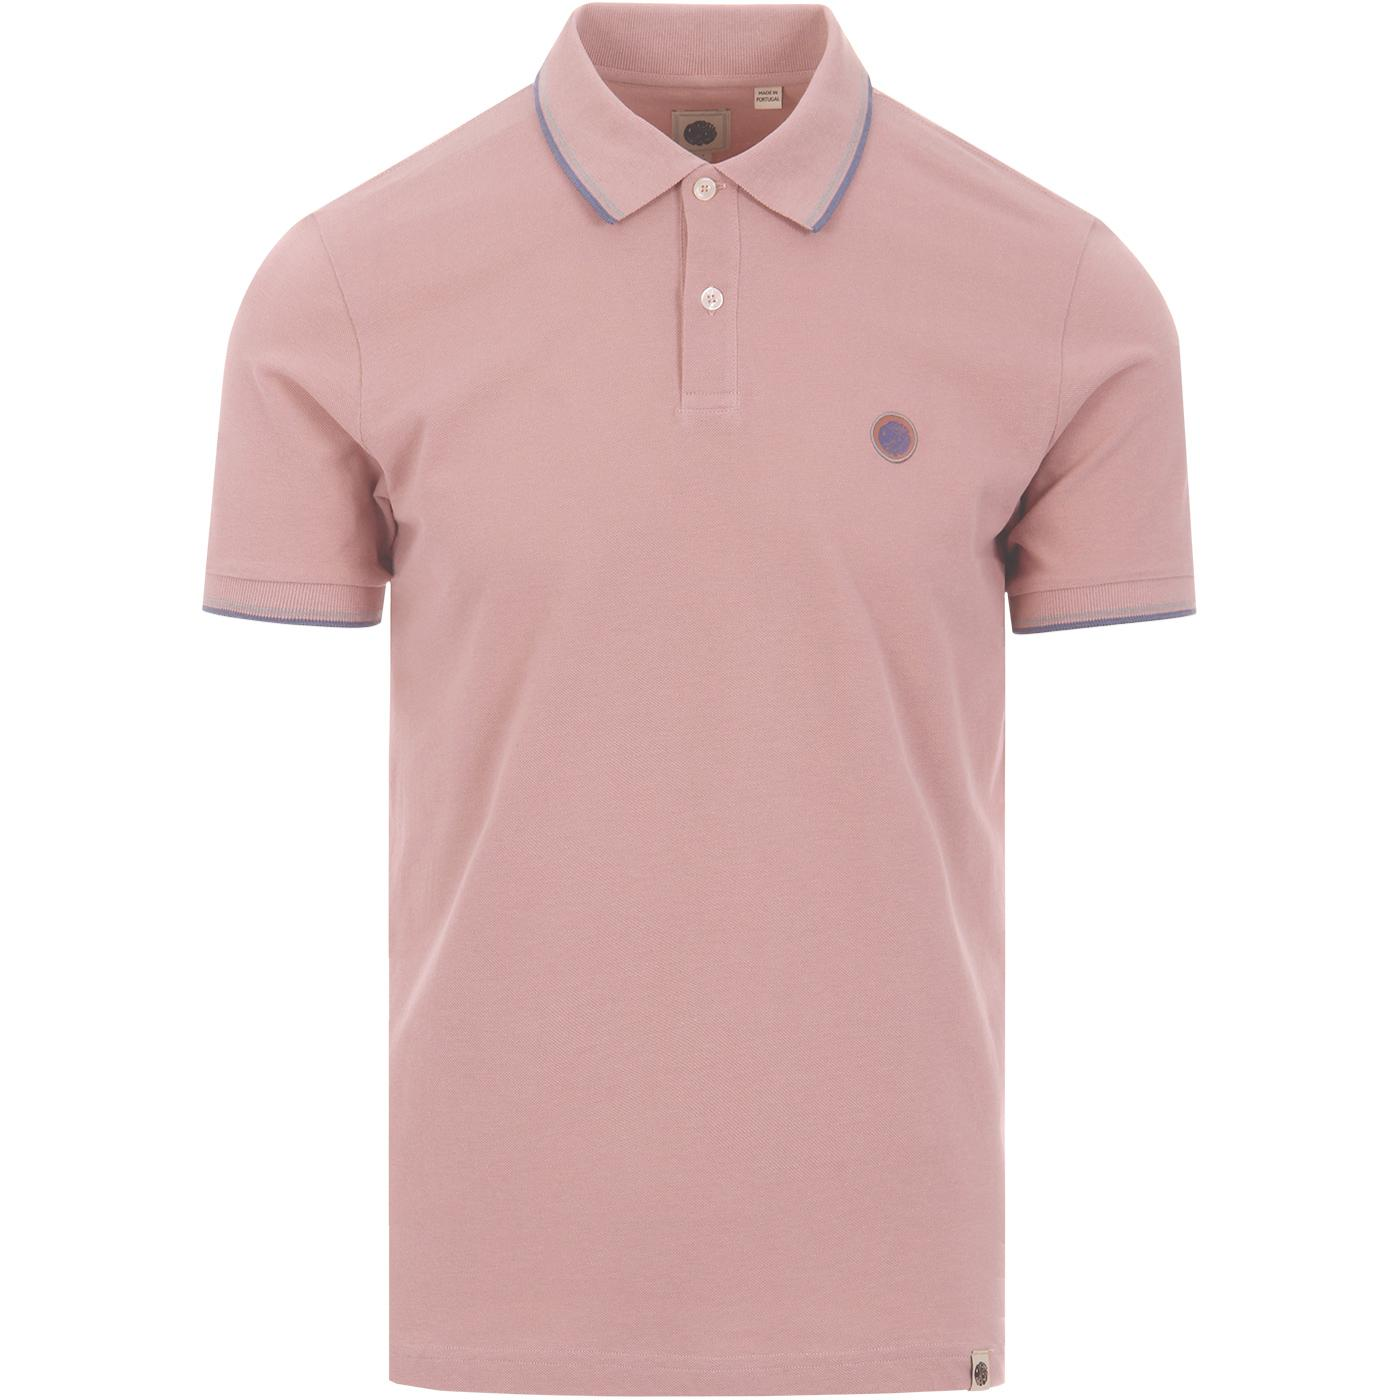 PRETTY GREEN Mod Twin Tipped Pique Polo Shirt PINK